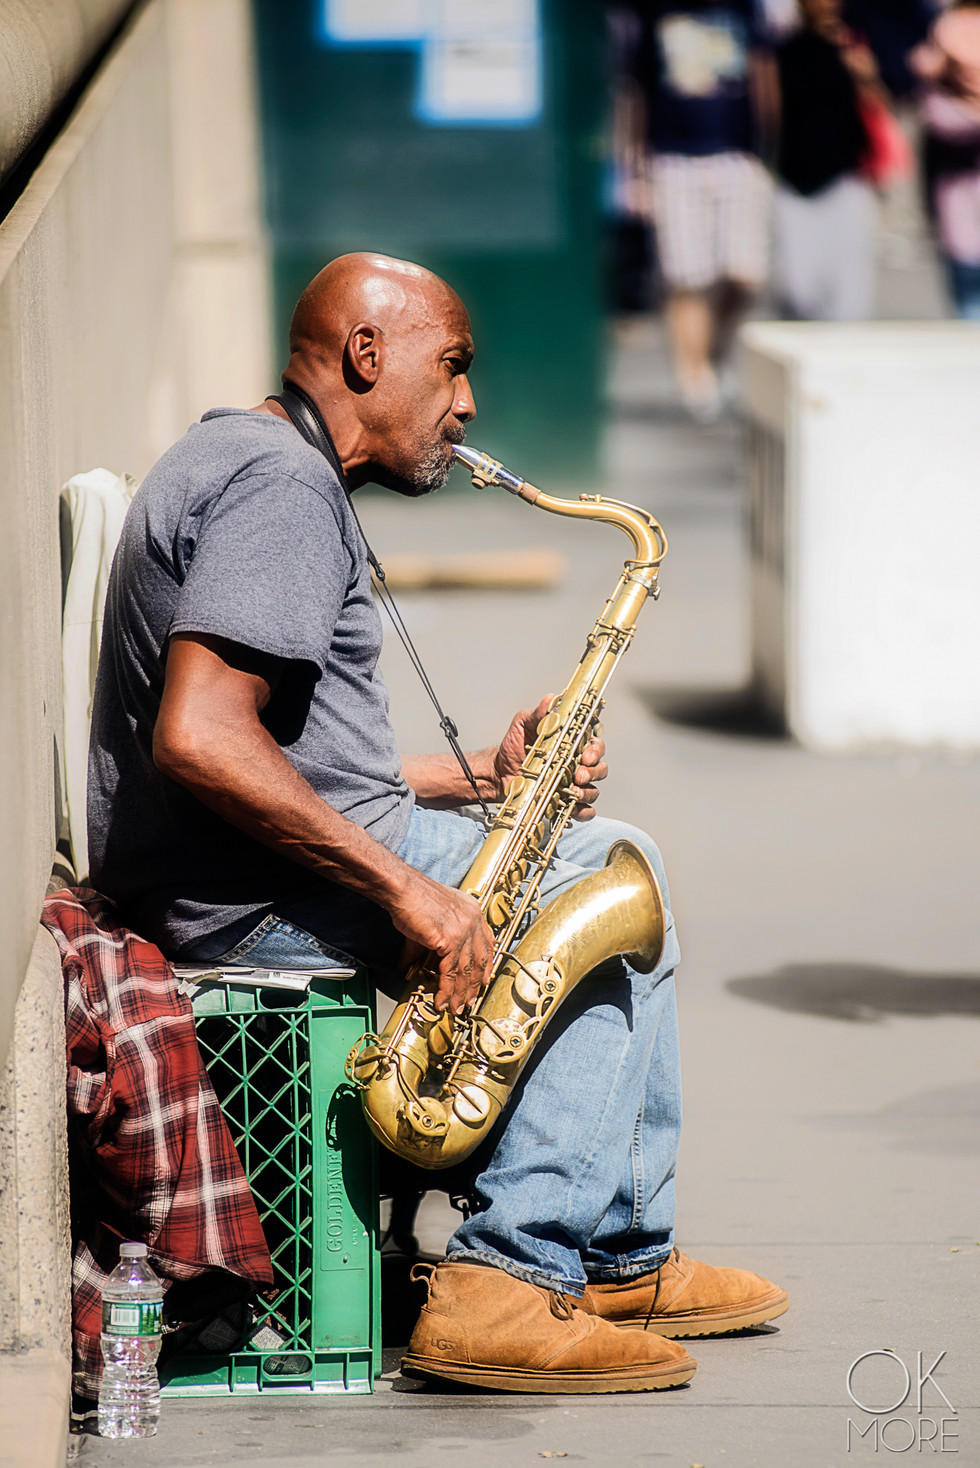 Portrait of a street musician in New York